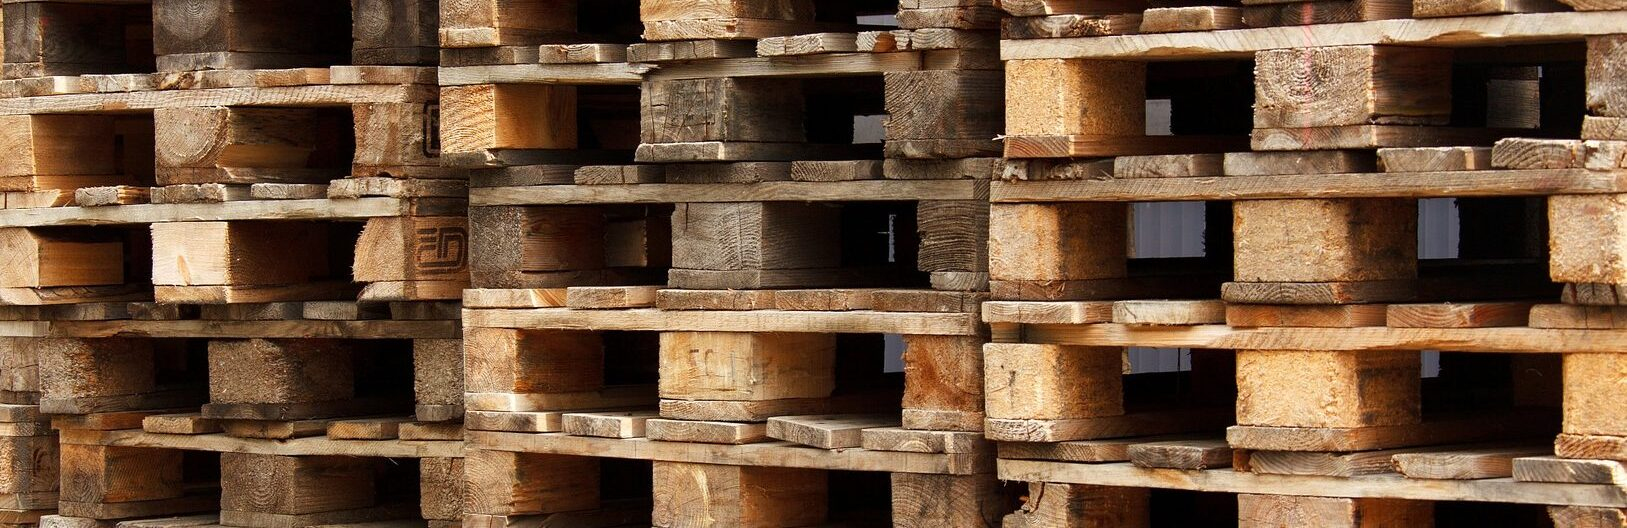 stacked wood pallets